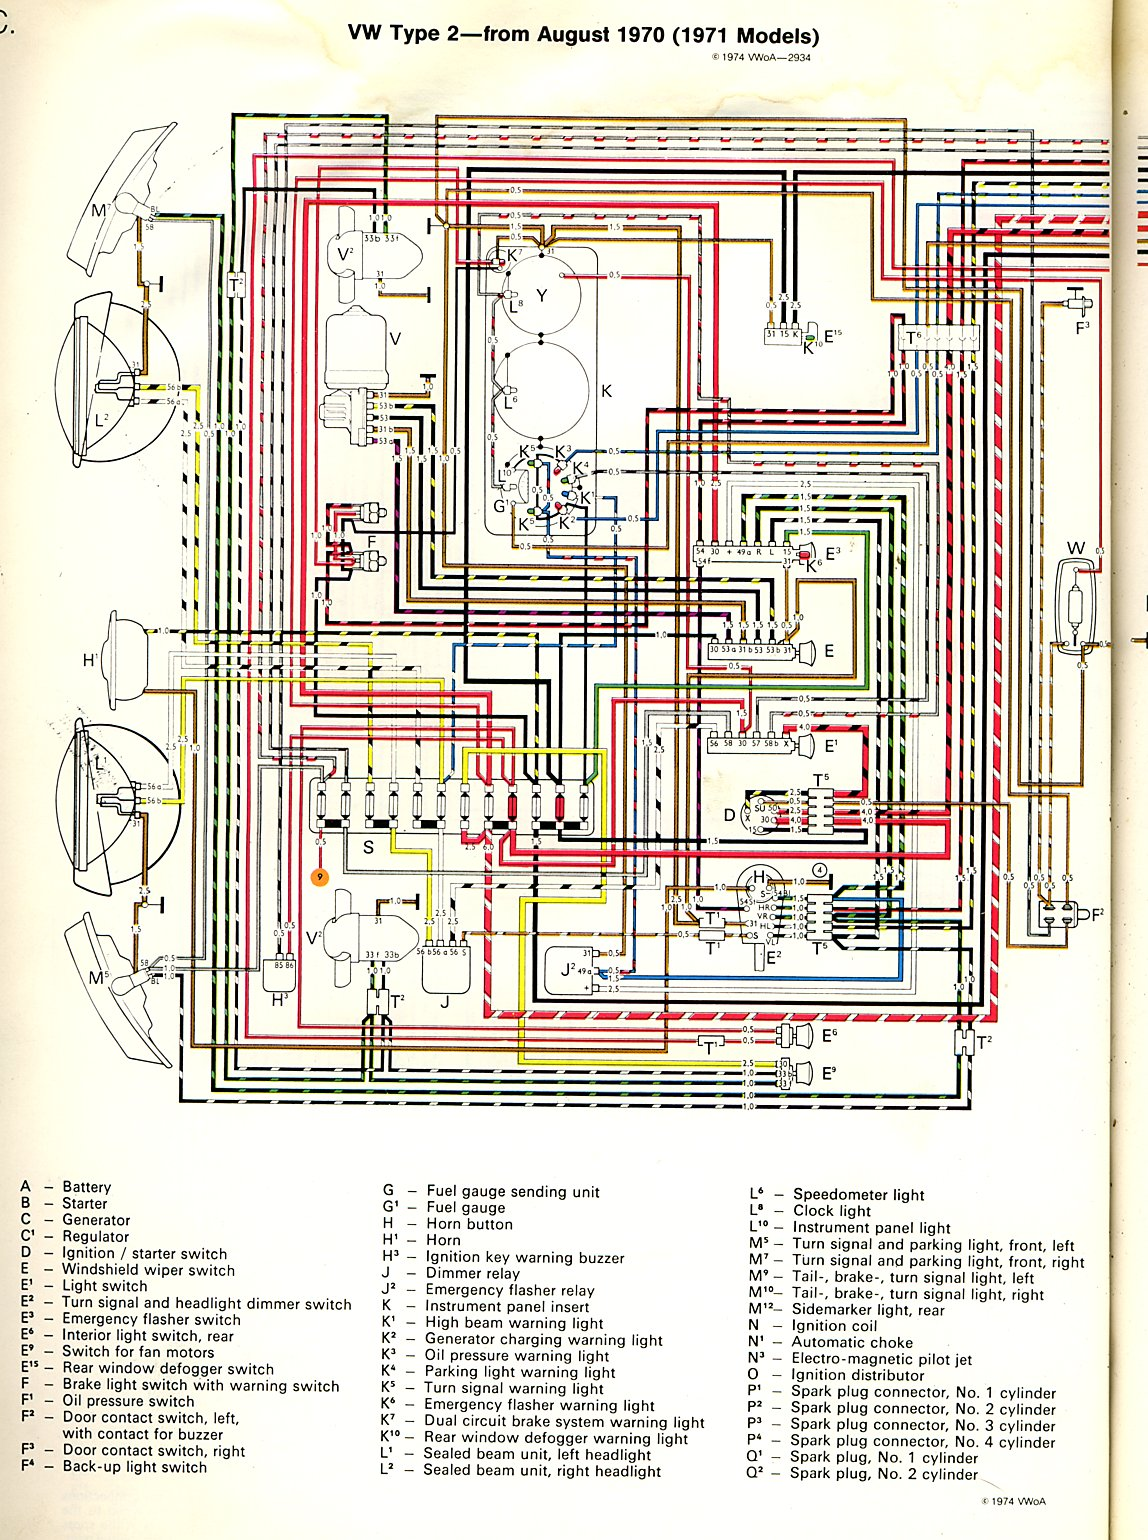 baybus_71a thesamba com type 2 wiring diagrams 1973 vw wiring diagram at reclaimingppi.co